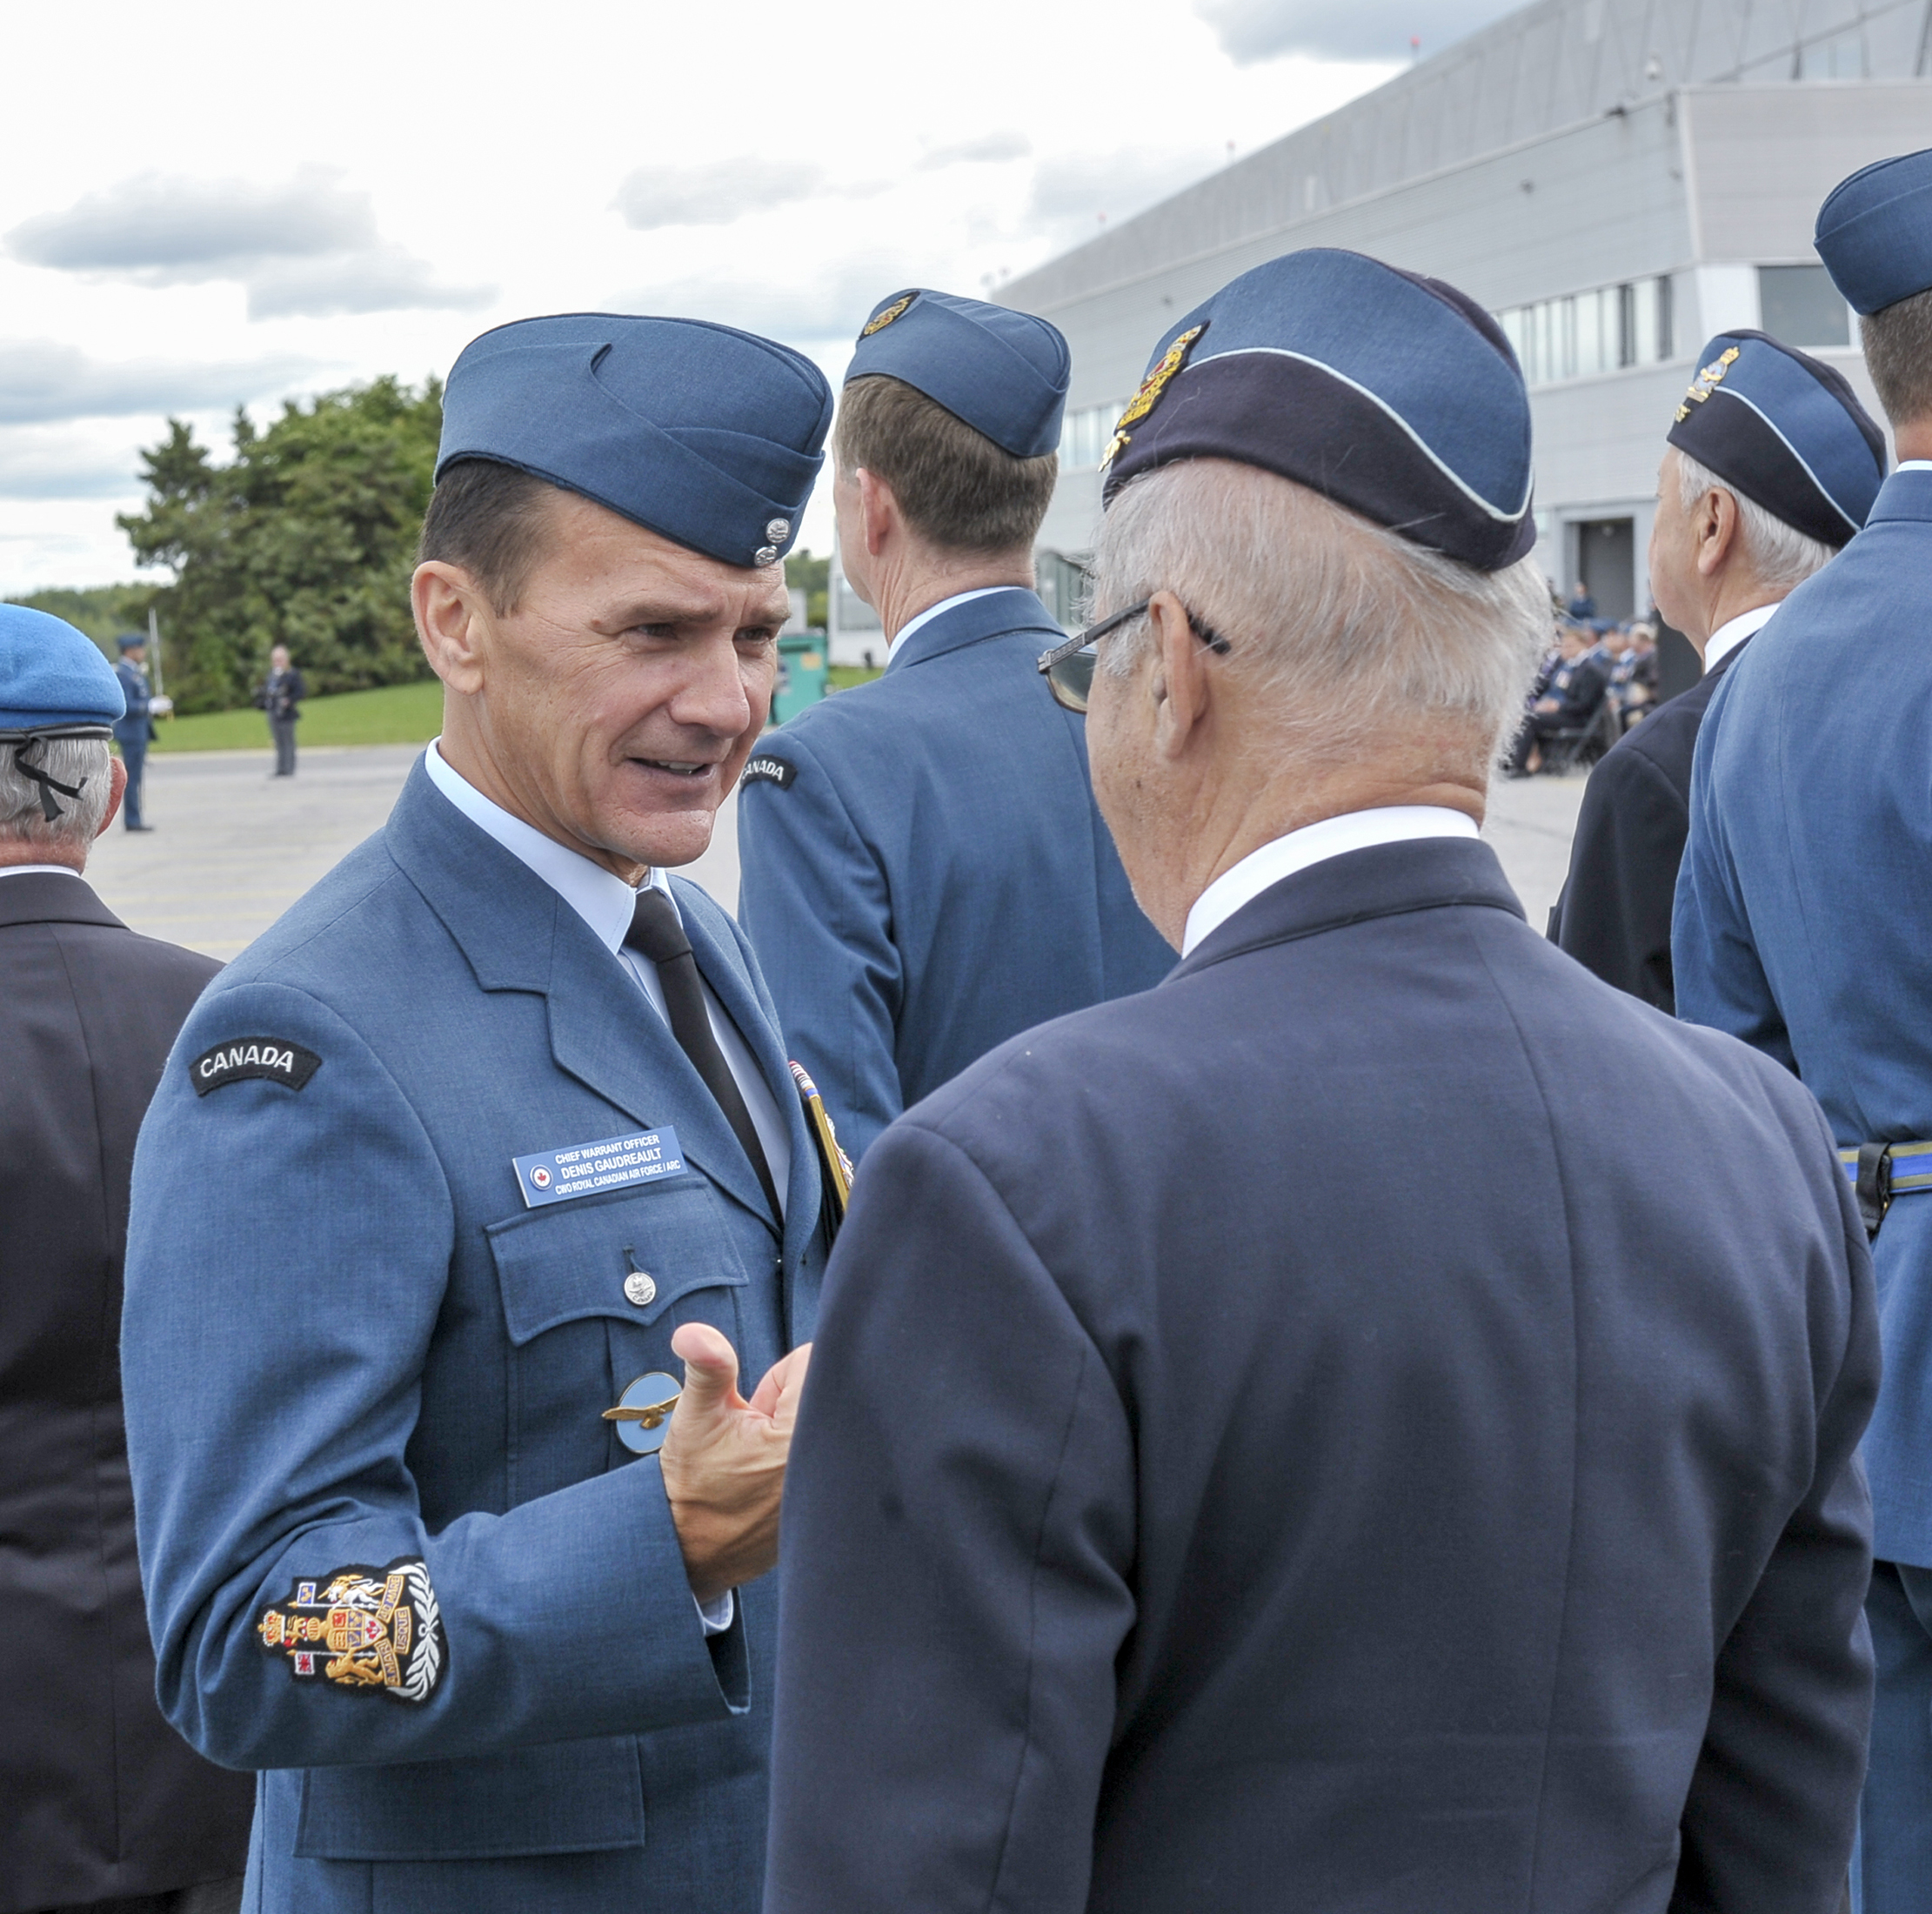 Chief Warrant Officer Denis Gaudreault, RCAF command chief warrant officer, pauses to speak with a veteran during the inspection of the parade during the national Battle of Britain parade held September 15, 2019, at the Canada Aviation and Space Museum in Ottawa, Ontario. PHOTO: Aviator Jacob Hanlon, FA01-2019-0008-021